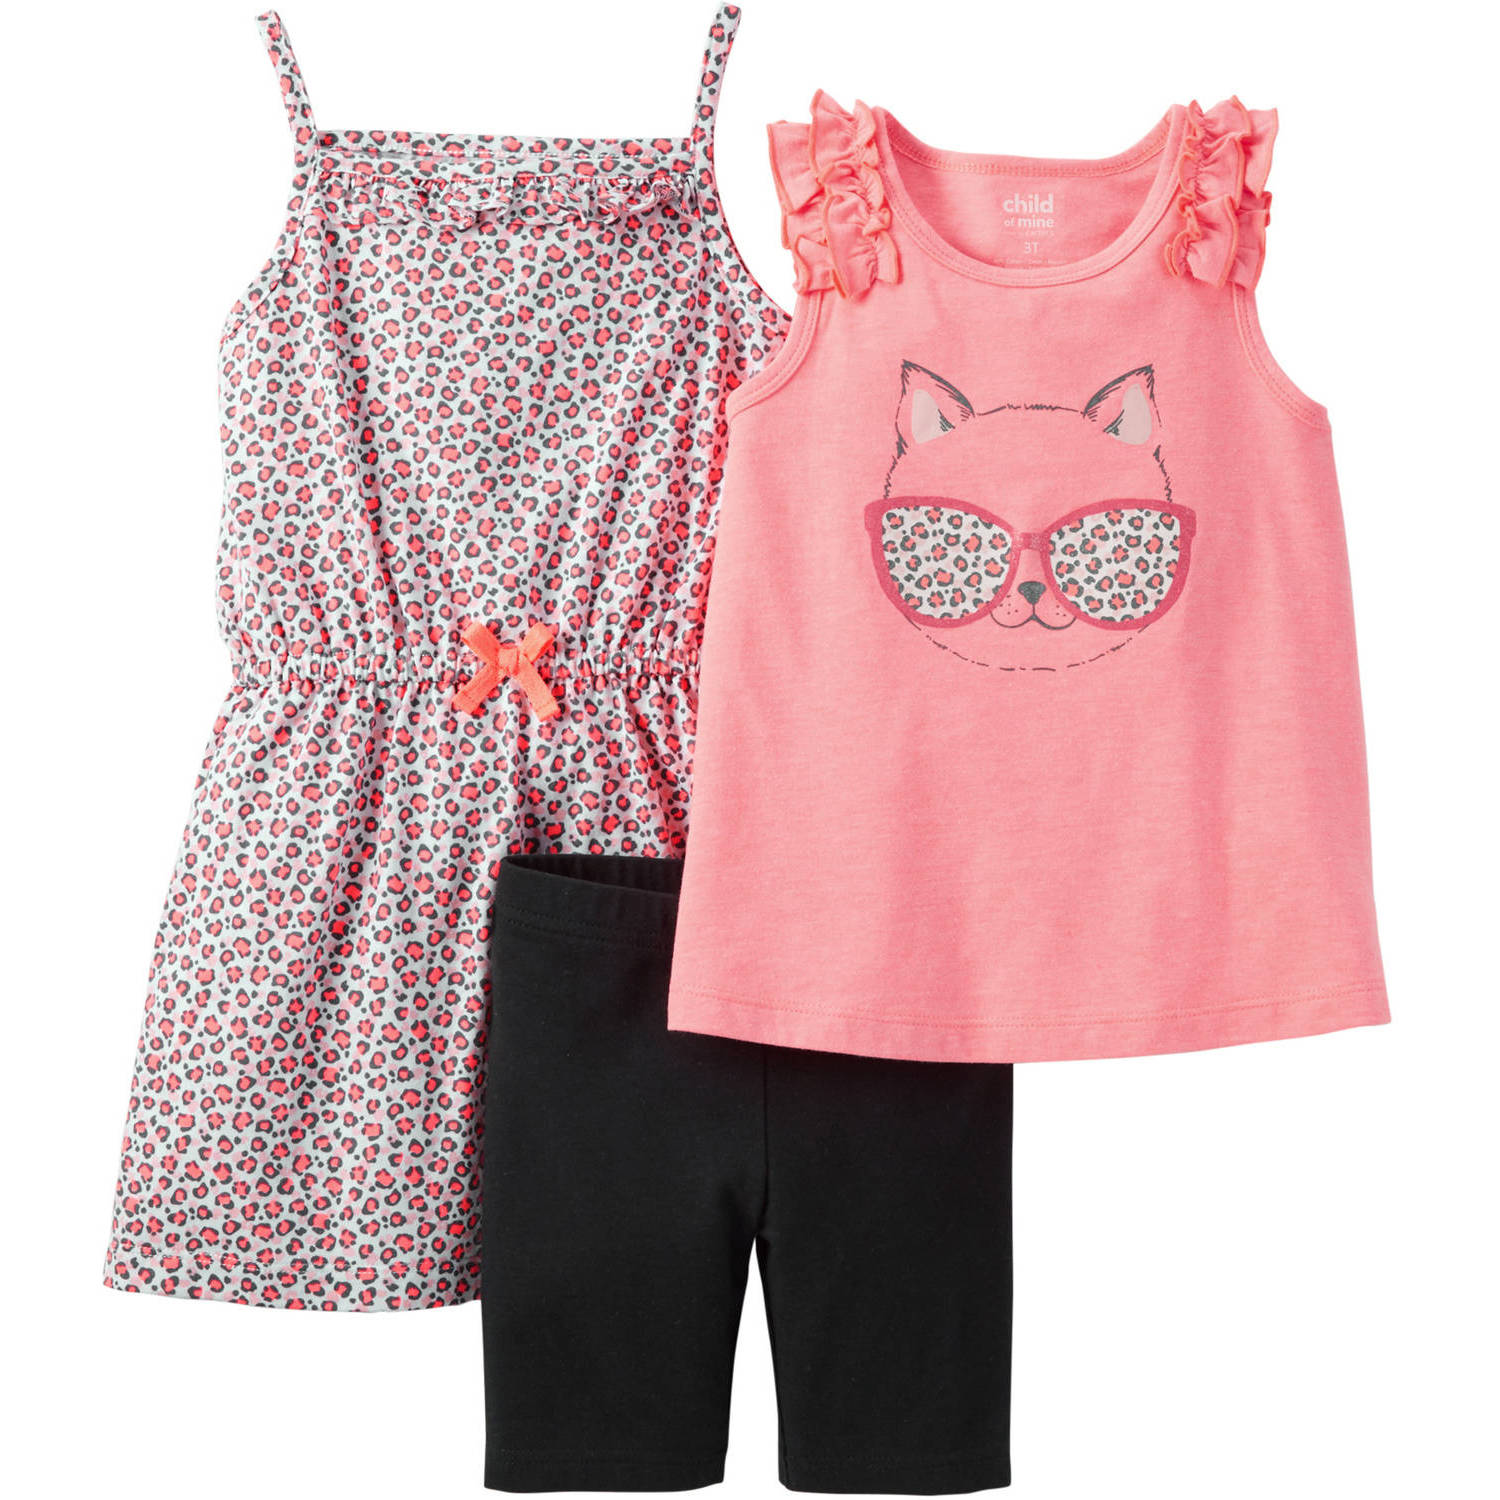 Child of Mine made by Carter's Baby Toddler Girl T Shirt Capri and Dress Outfit Set 3 Pieces